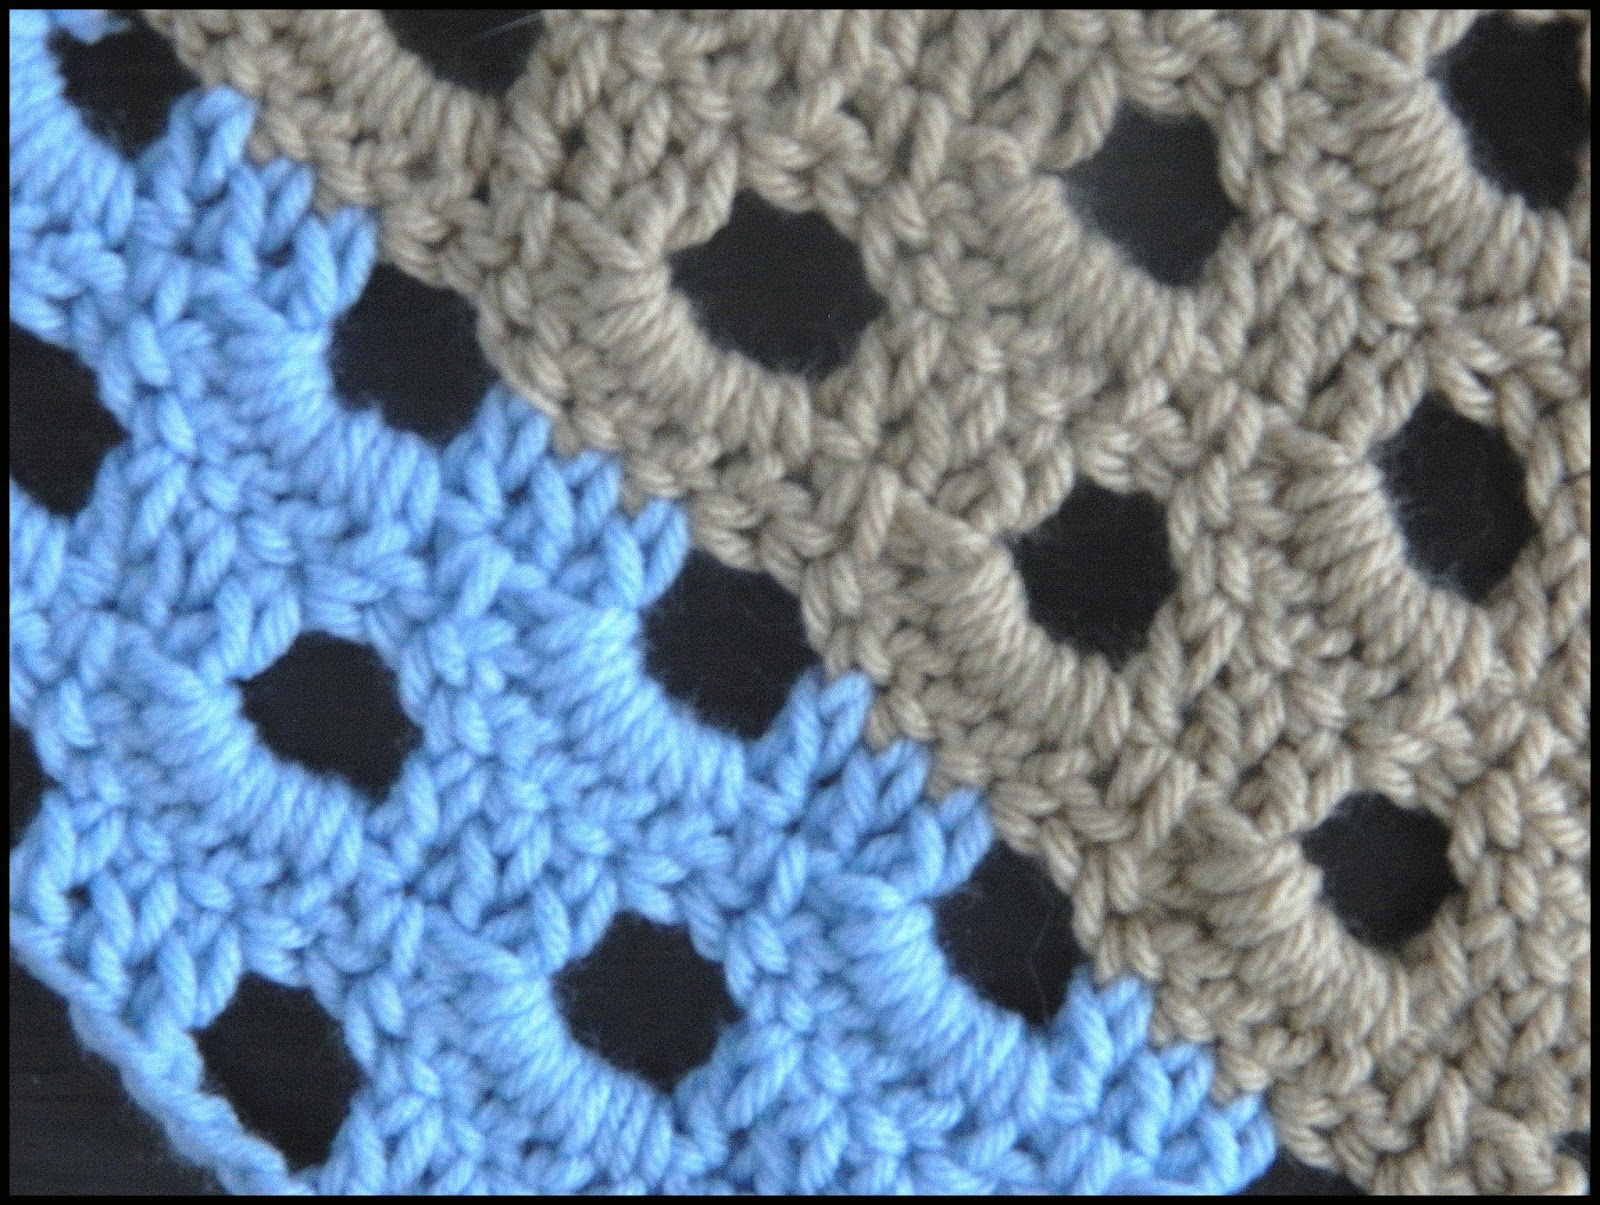 Advanced Crochet Patterns : Free Crochet Patterns for the Beginner and the Advanced: Crochet Video ...